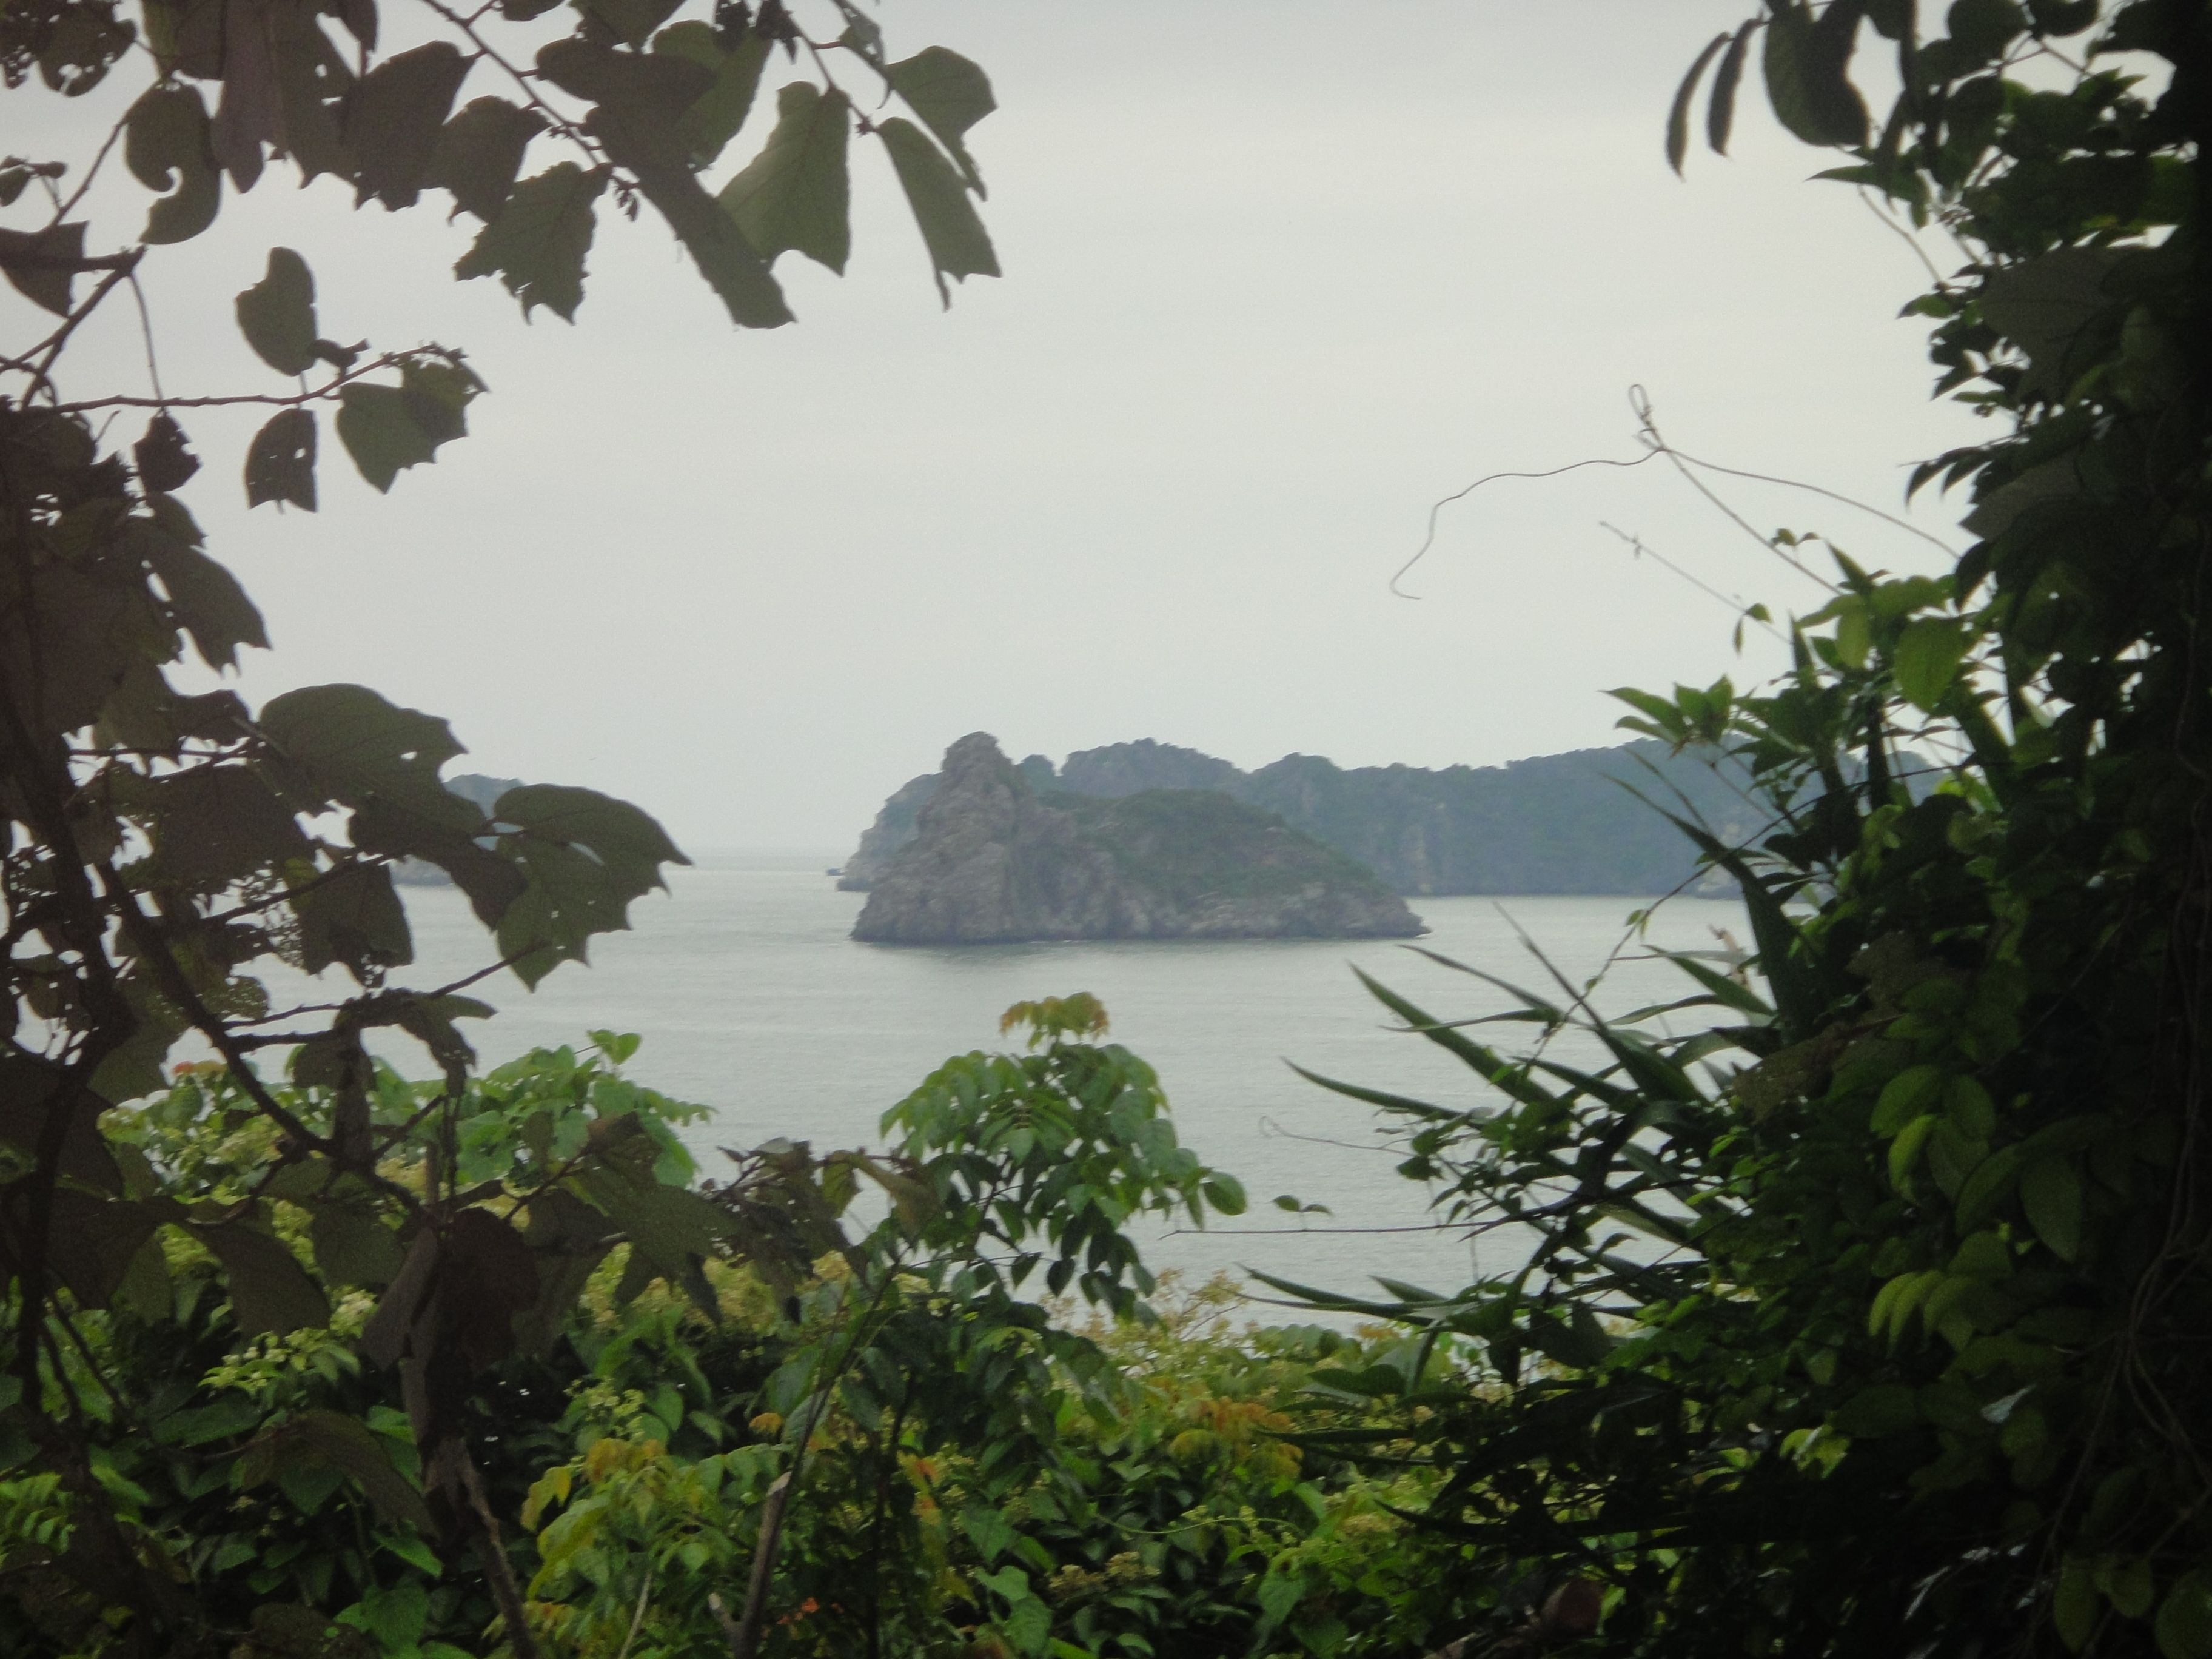 view over karst islands framed by trees, monkey island, halong bay, vietnam